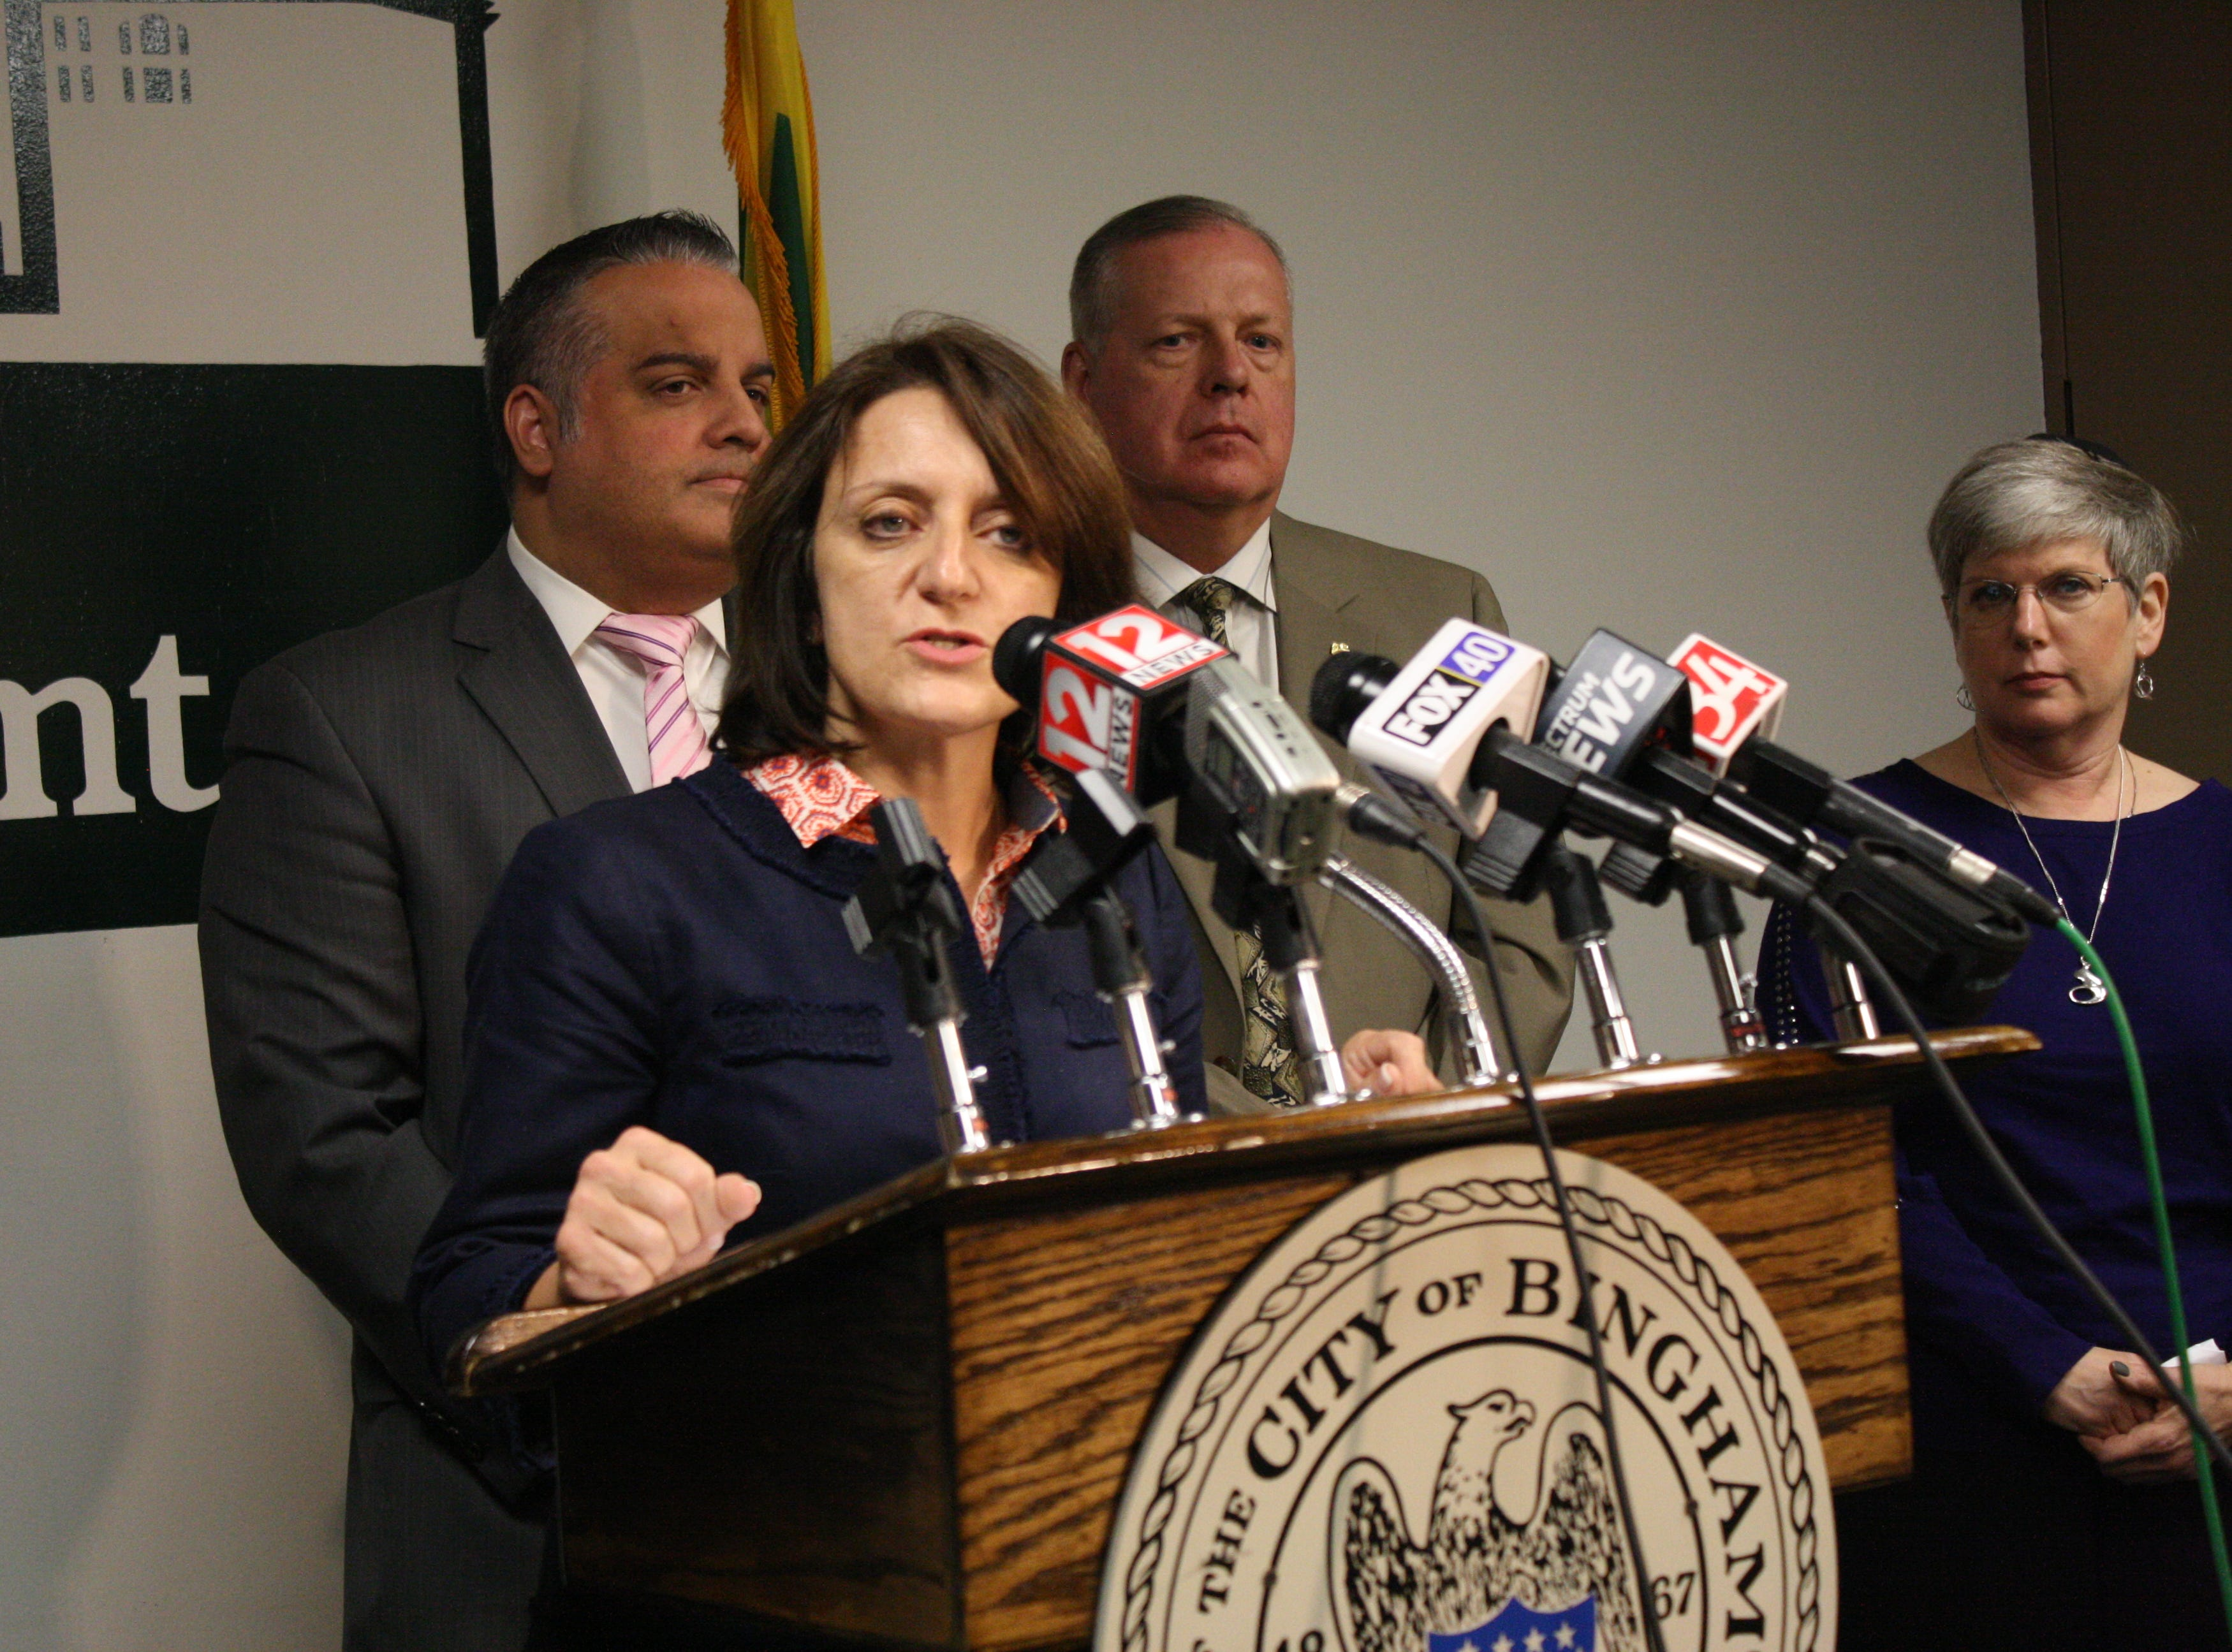 Tonia Thompson, superintendent at Binghamton City School District, speaks at a press conference Wednesday regarding swastika graffiti found around Binghamton High School Tuesday.